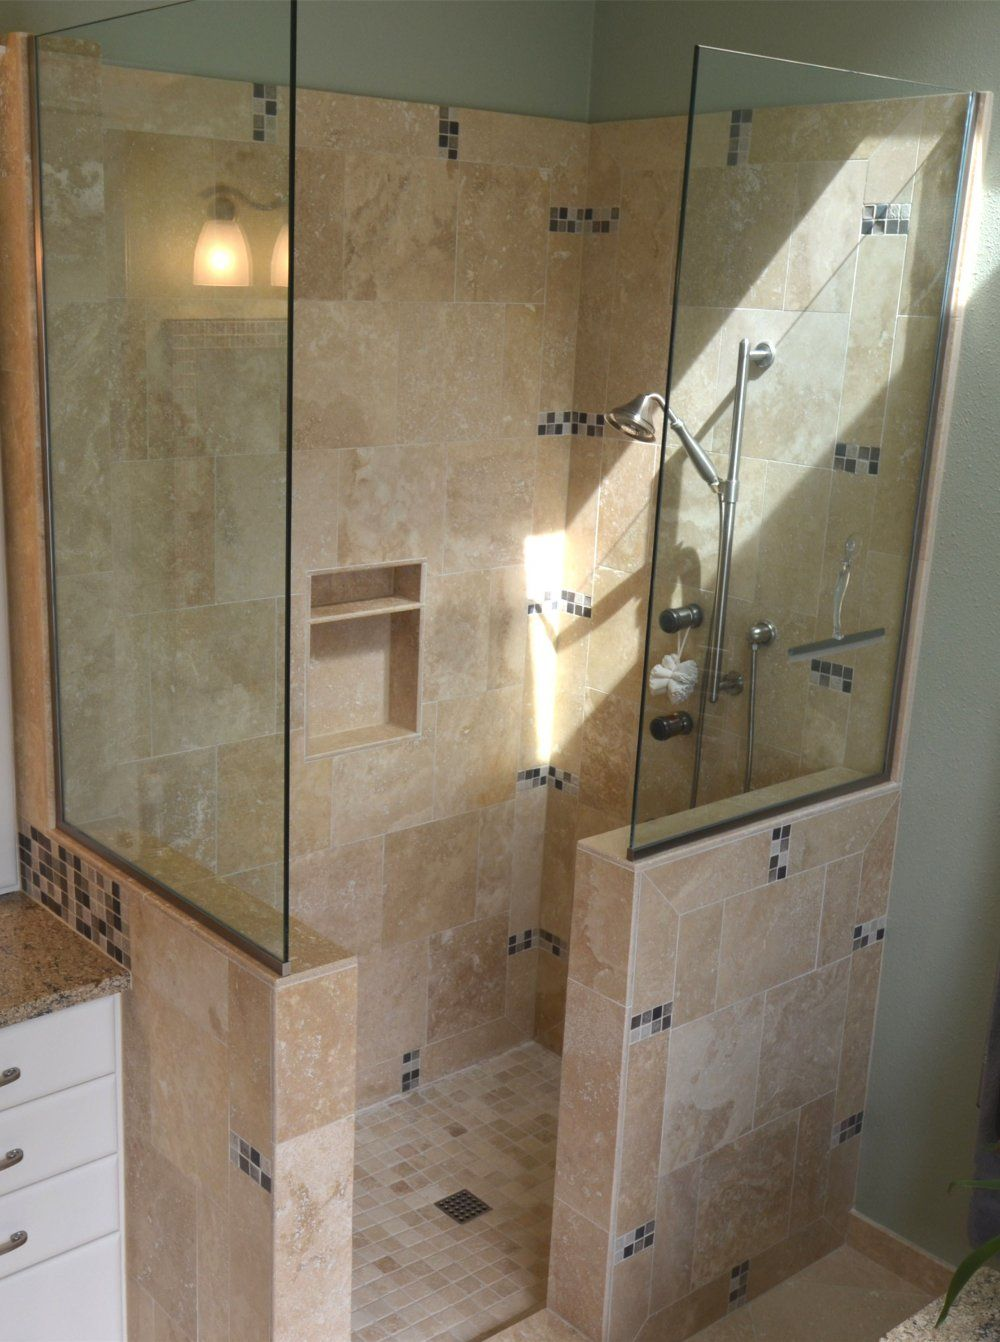 Think Of Having A Doorless Shower Or Walk In Shower In Your Home Read This First Bathroom Remodel Shower Doorless Shower Shower Remodel